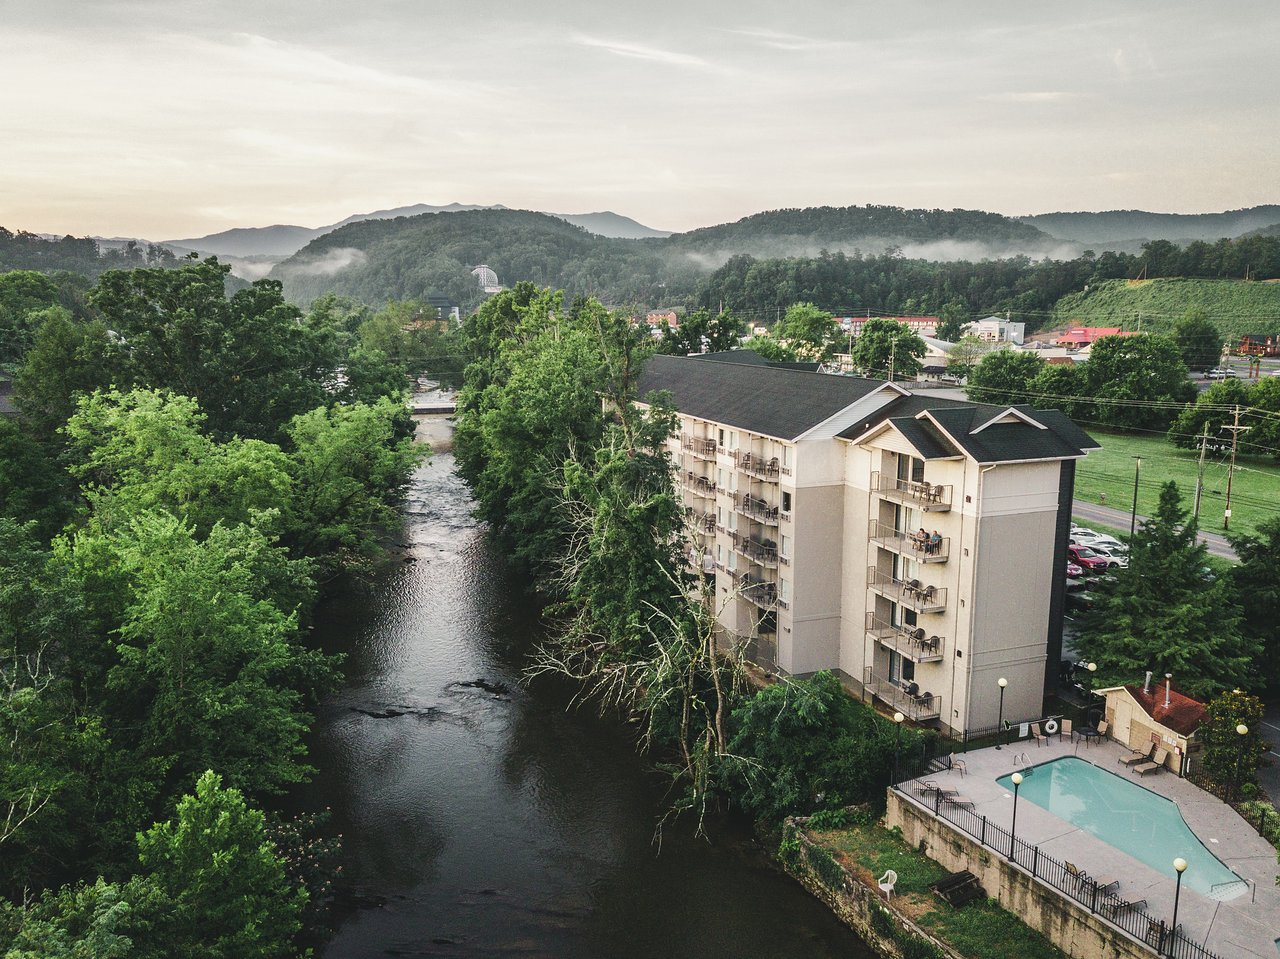 THE 10 BEST Gatlinburg Hotels on the River - Sept 2019 (with